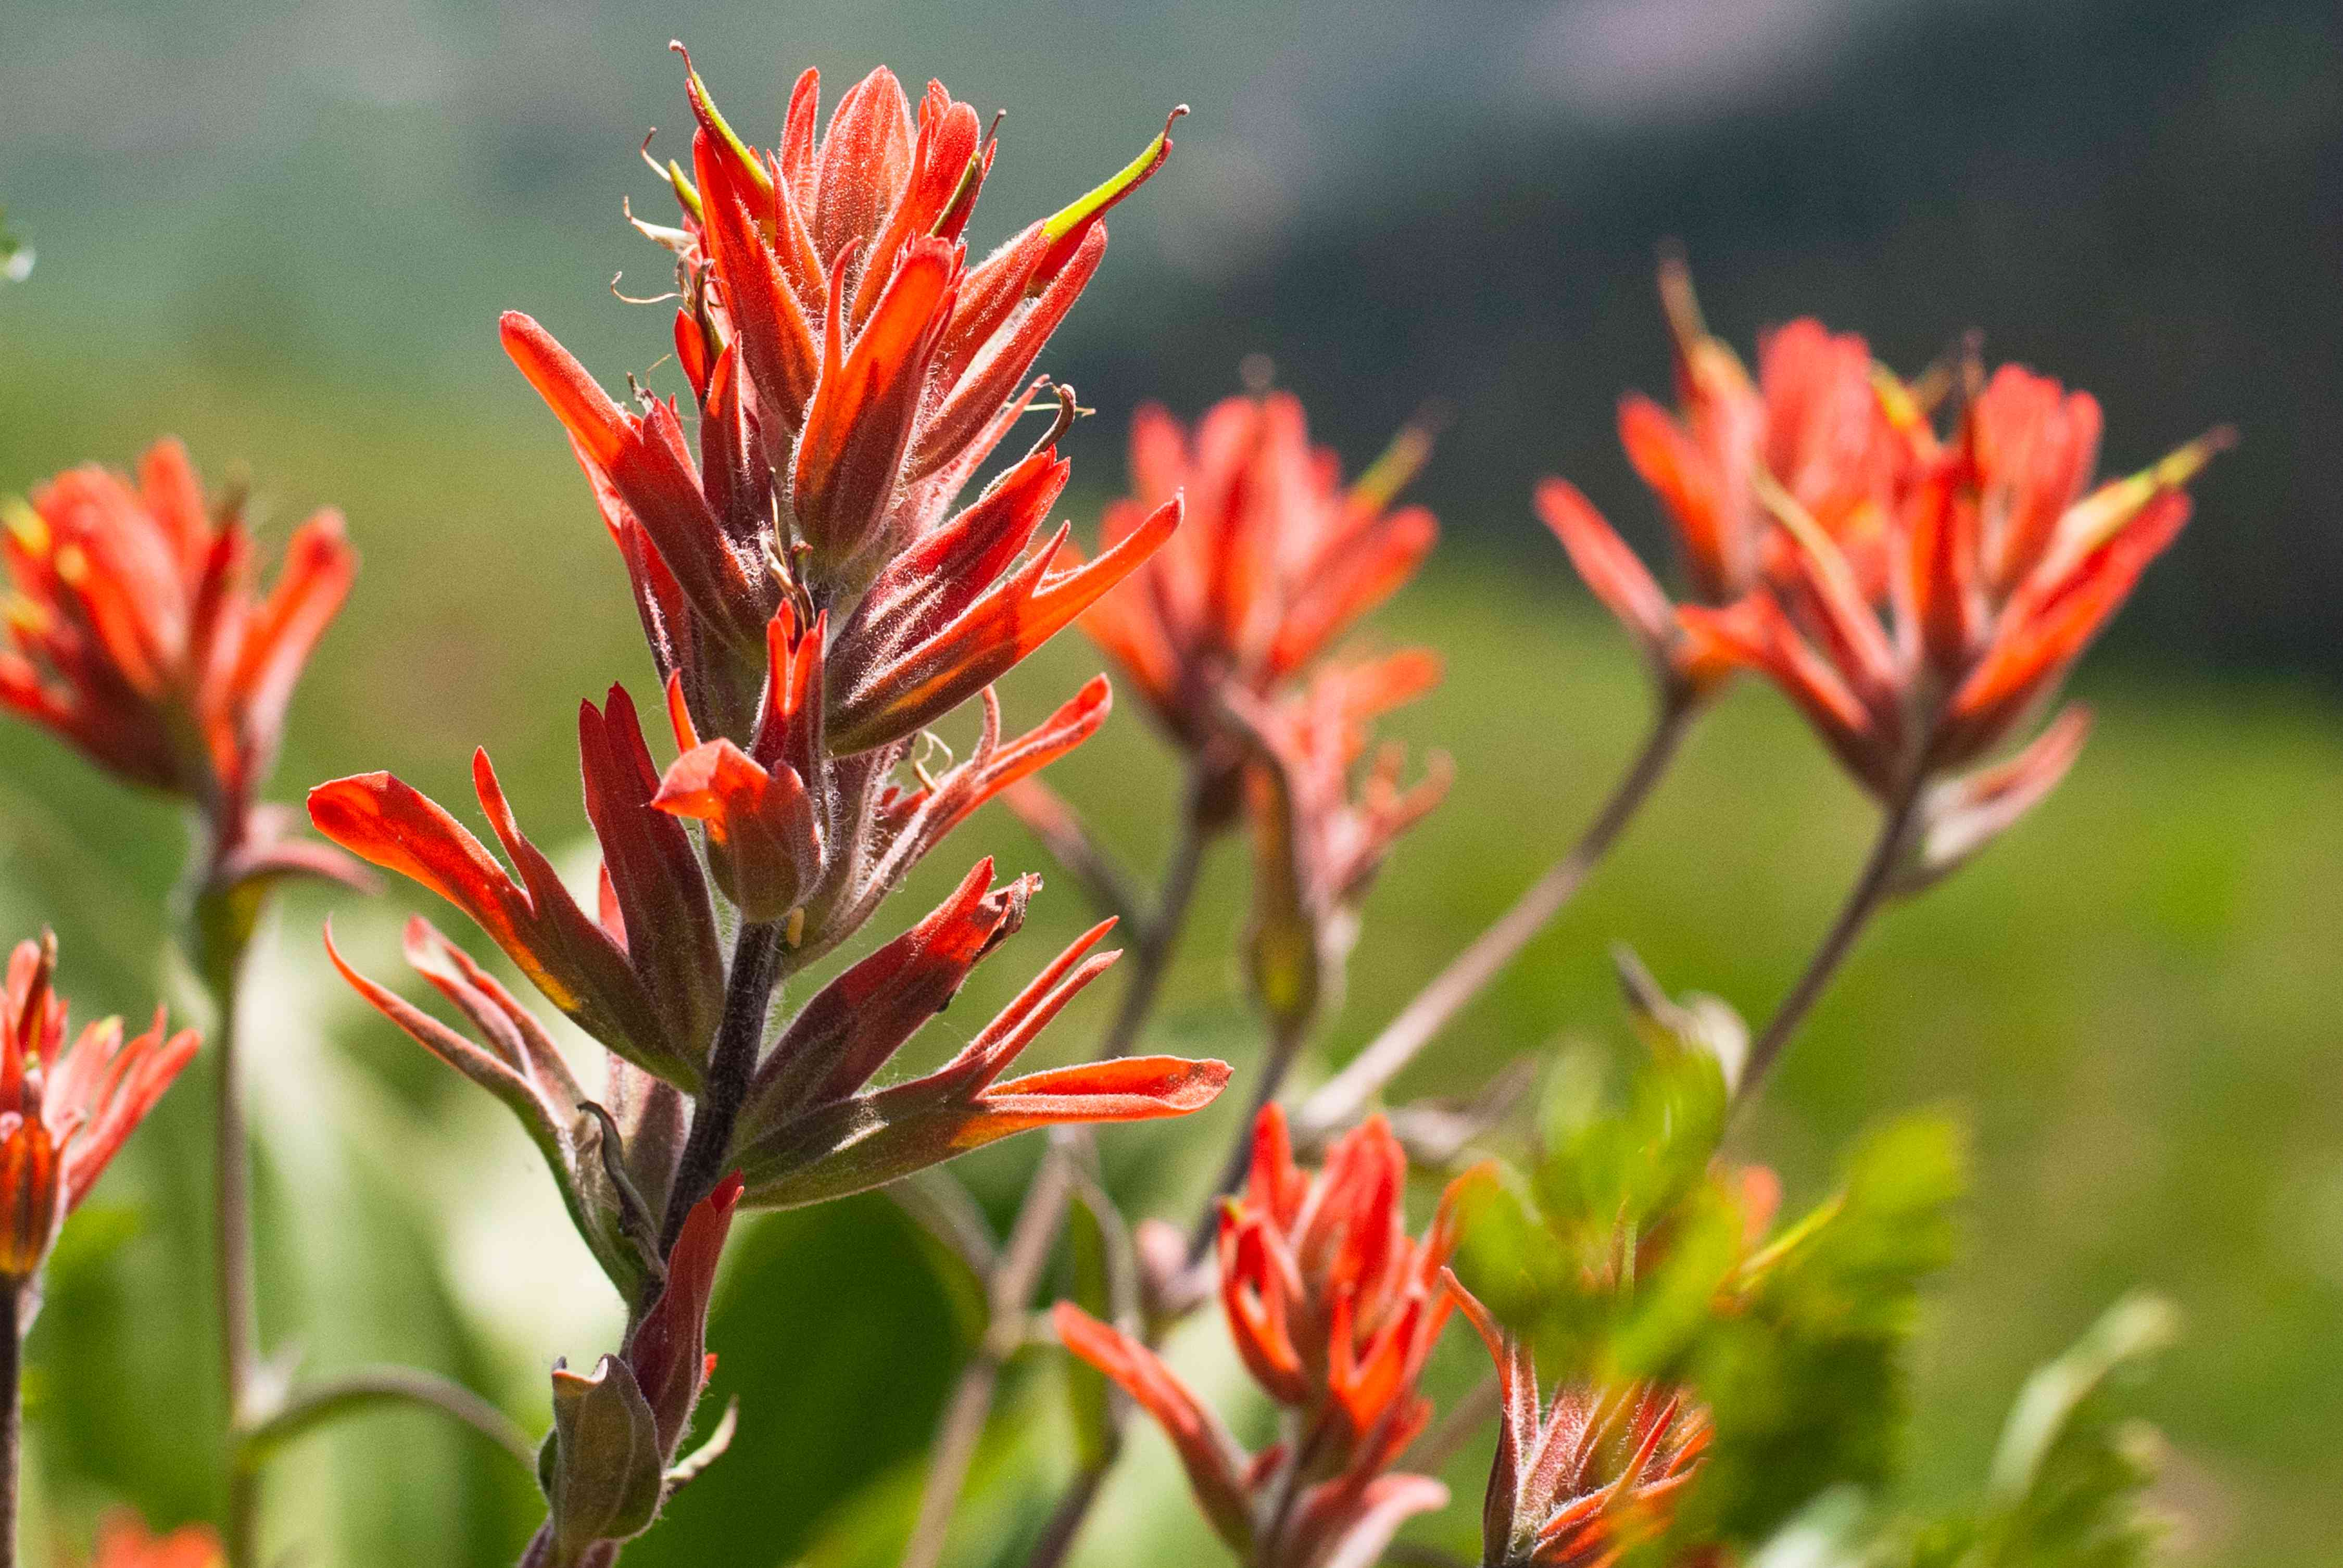 Scarlet painted cup plants with red-orange bracts growing in sunlight